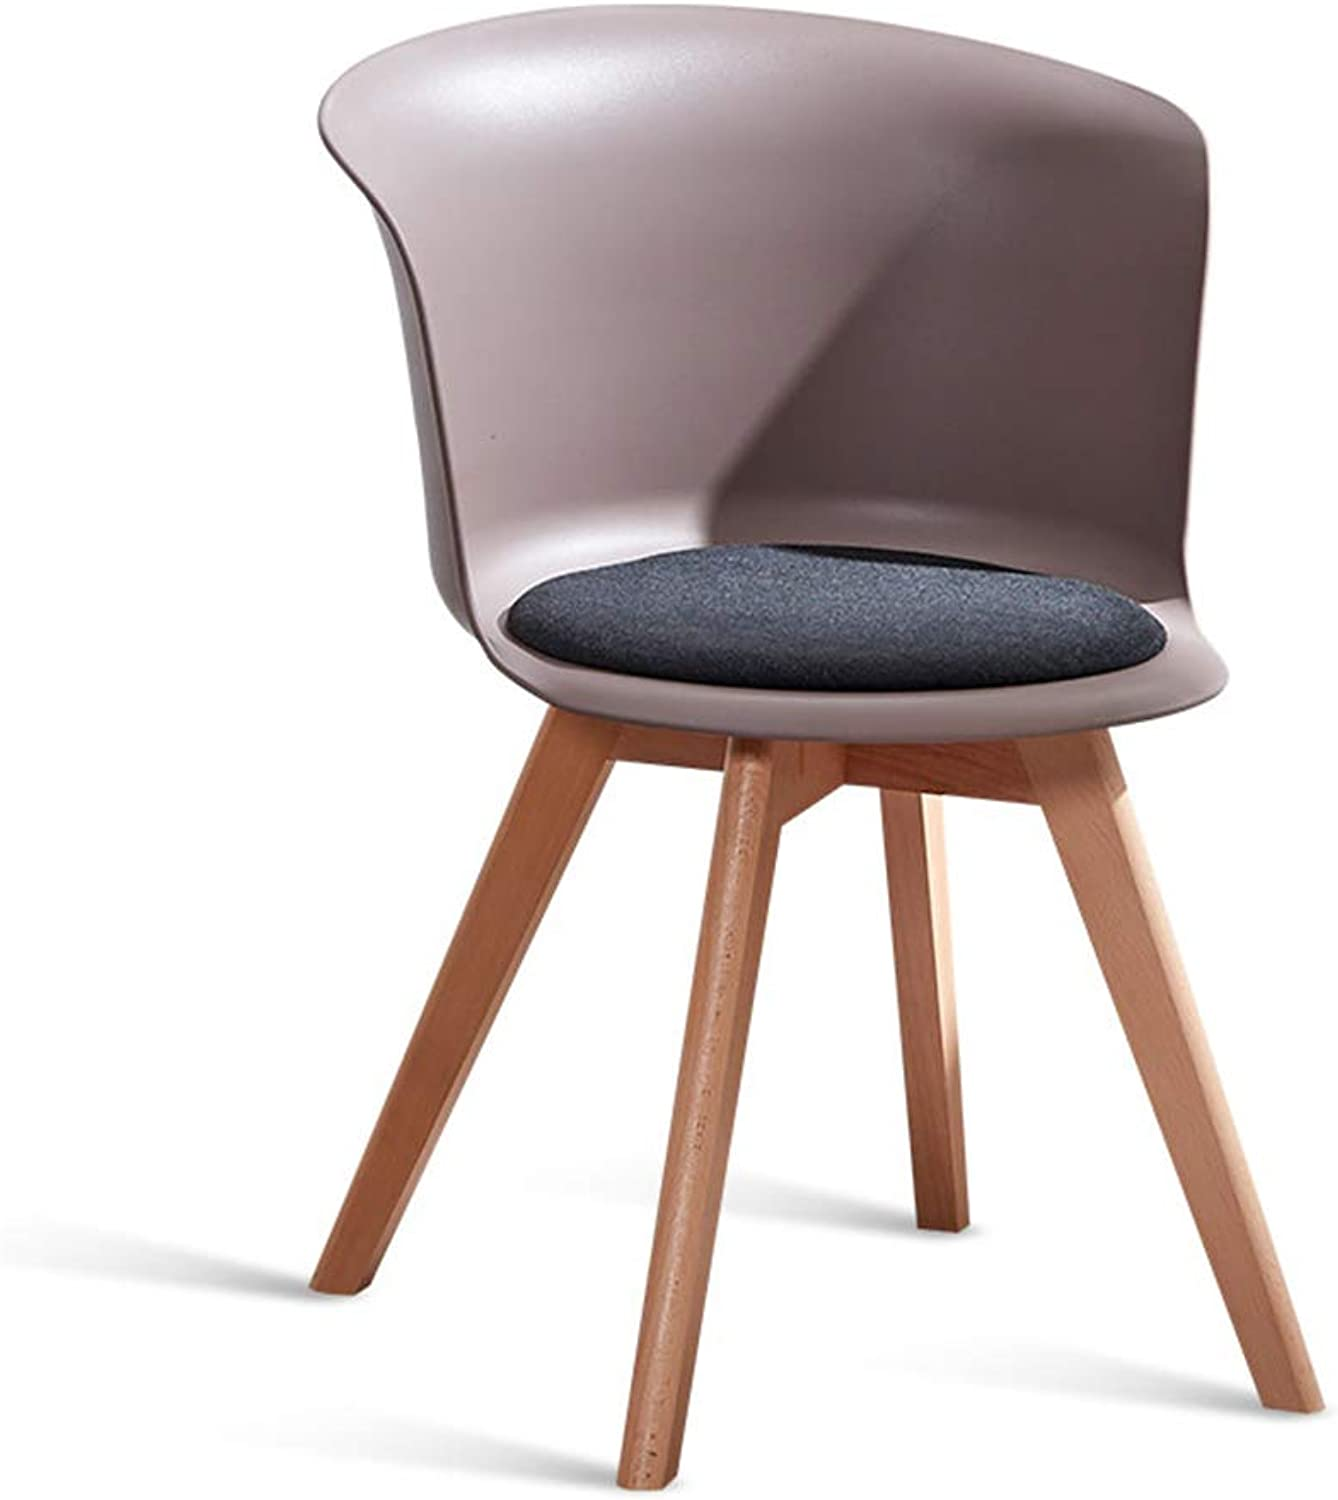 Simple Modern Style with Backrest Wood Bracket Bar Chair Stool Coffee Shop Leisure Chair for Dining Room bedrooms,Brown